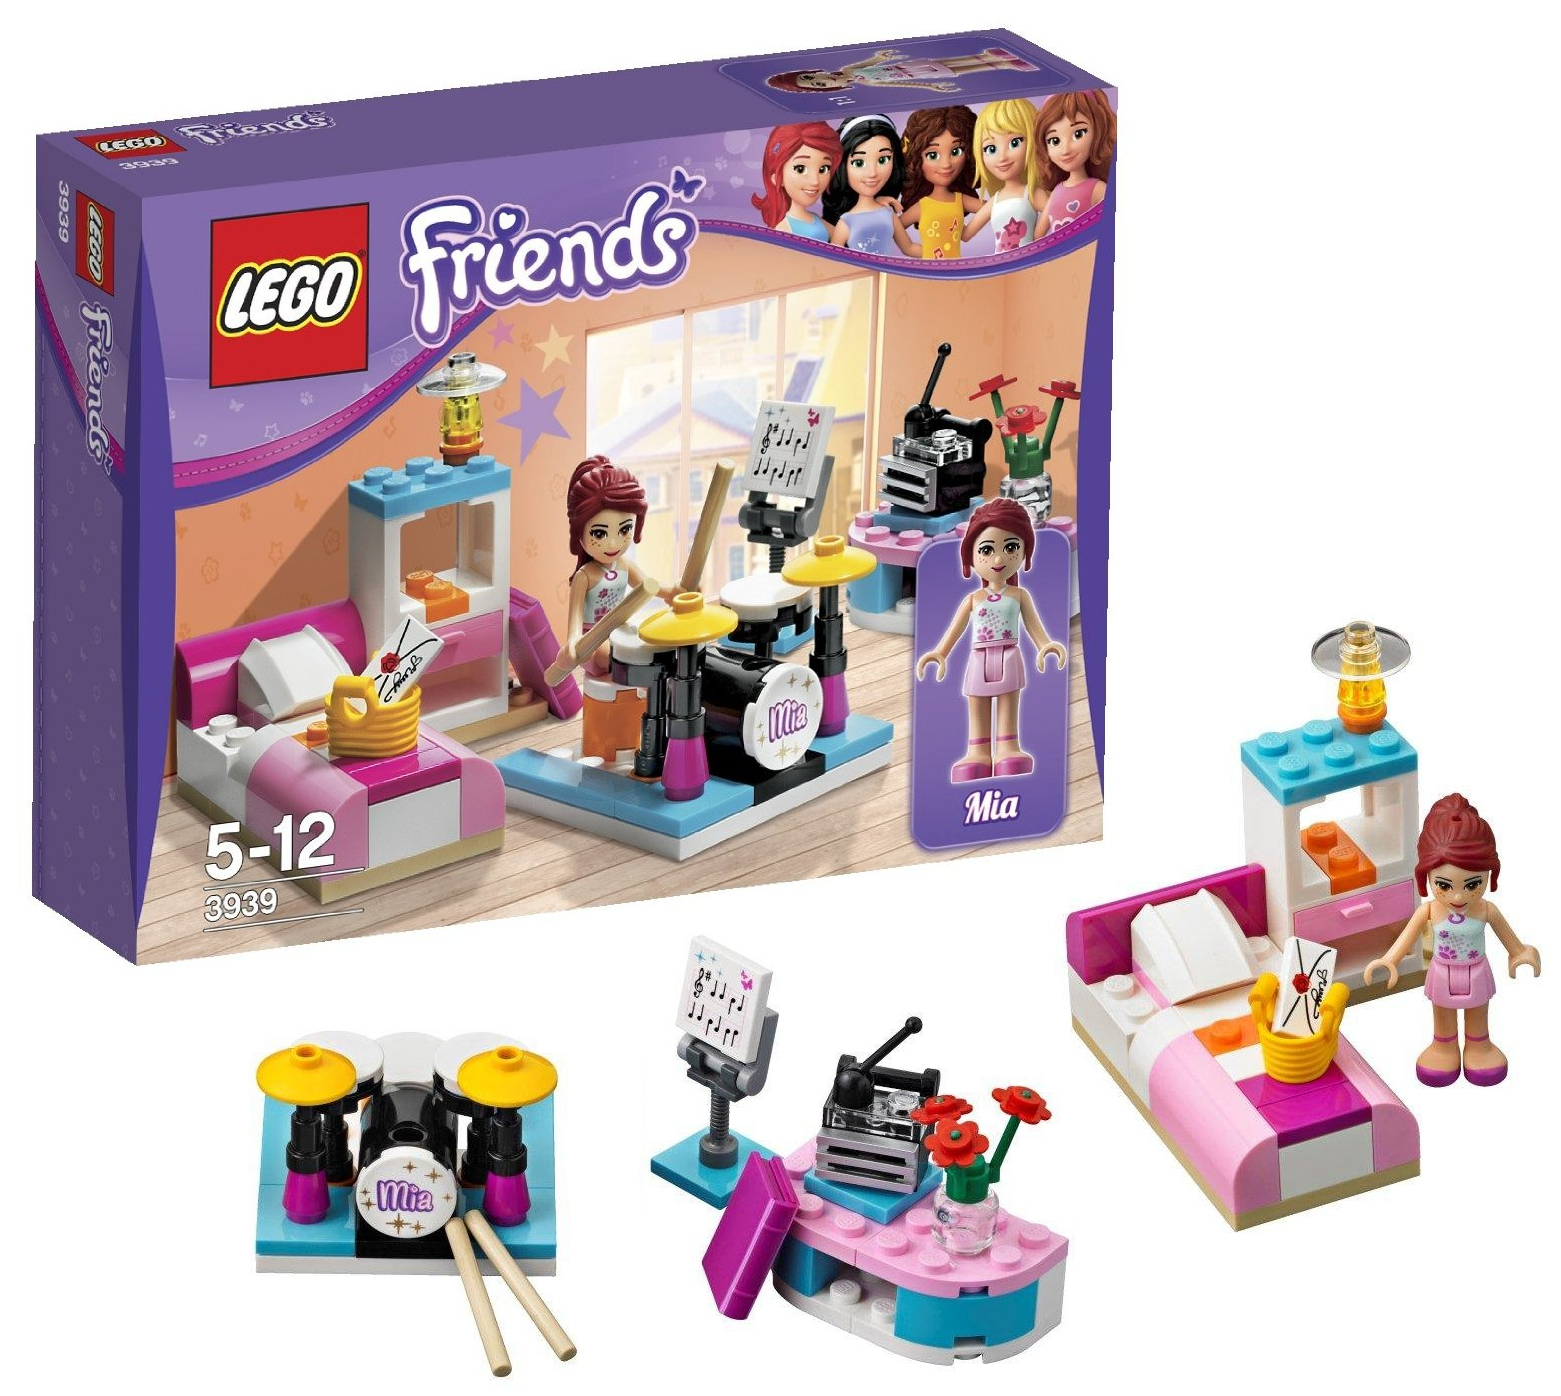 Lego Friends La Piscina The Brickverse Lego Friends Summer Wave